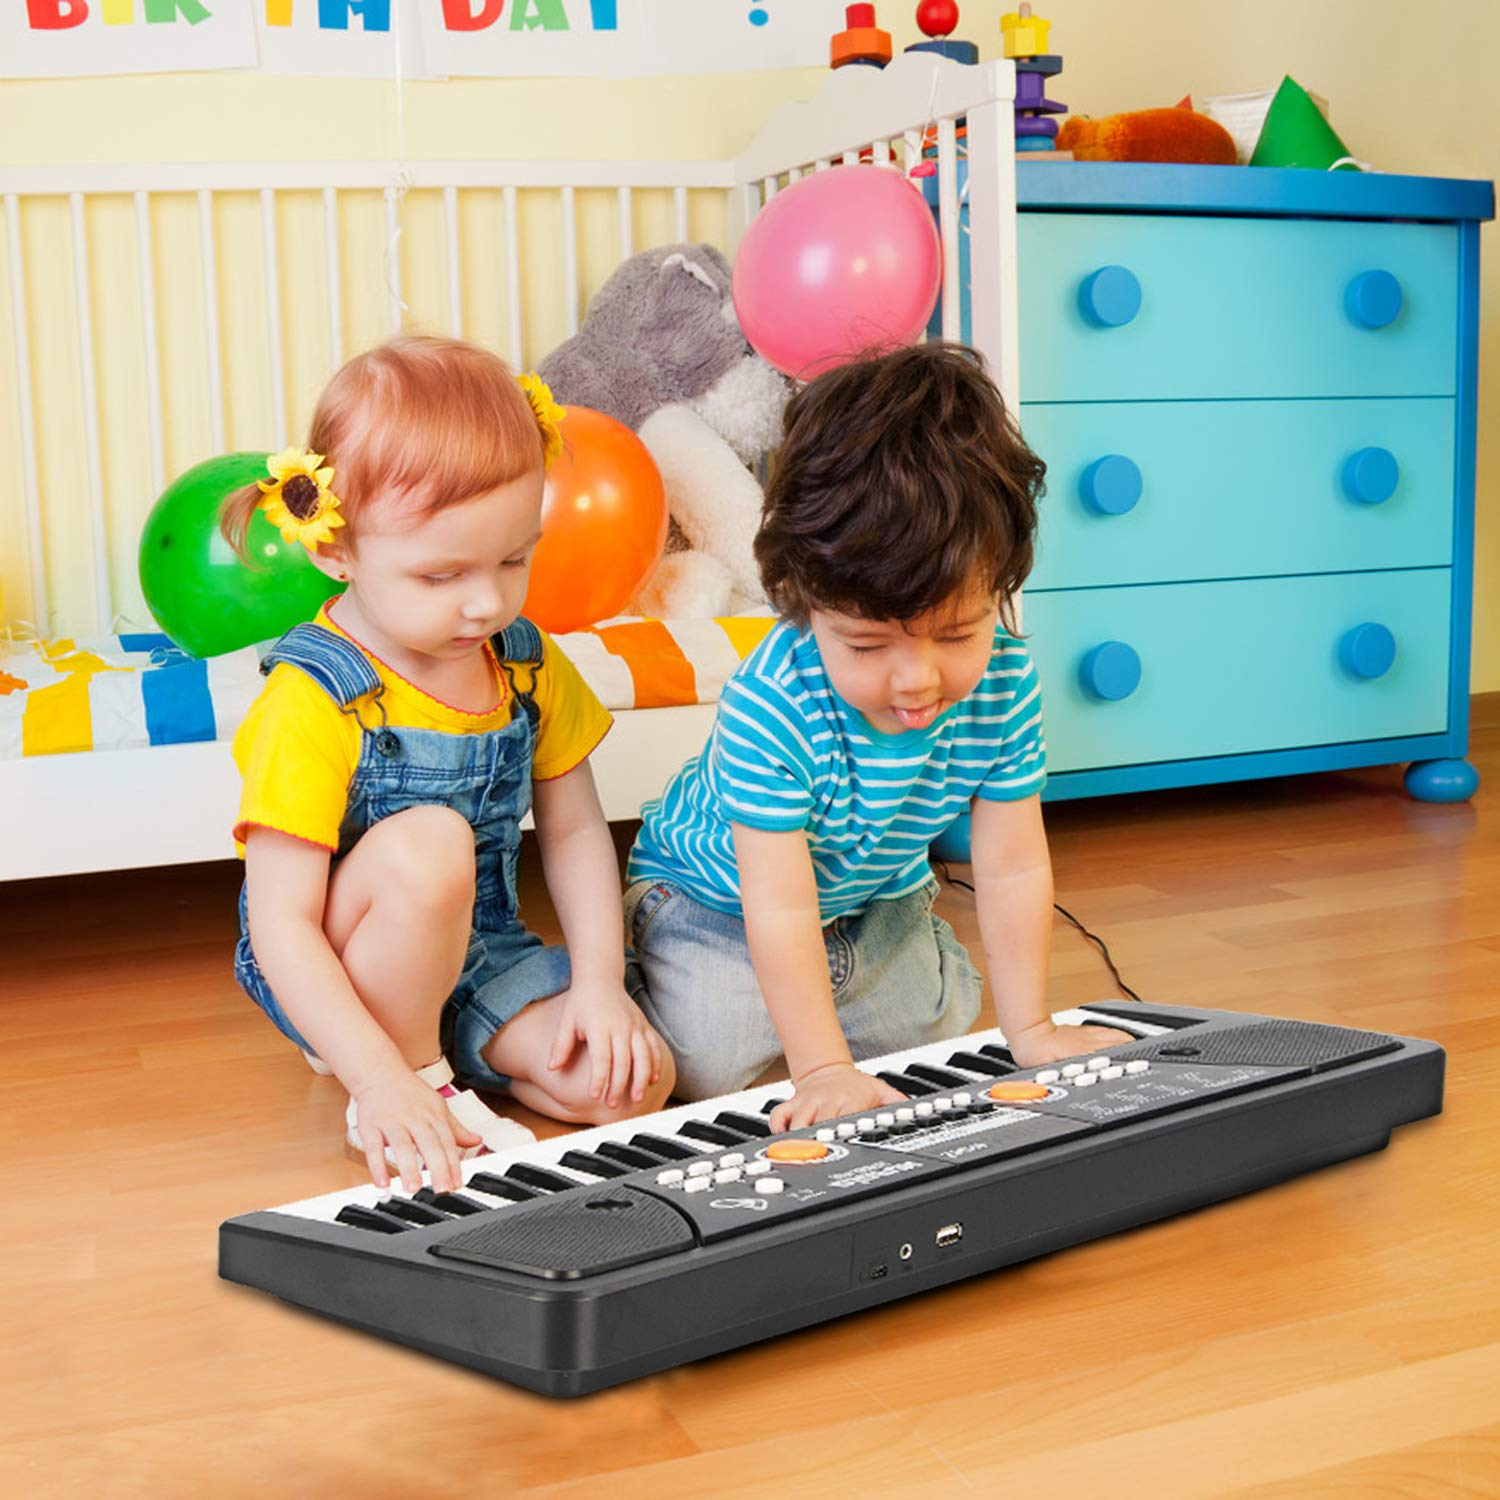 AIMEDYOU 49 Keys Piano Keyboard for Kids Multifunction Portable Piano Electronic Keyboard Music Instrument Birthday Xmas Day Gifts for Kids by AIMEDYOU (Image #6)